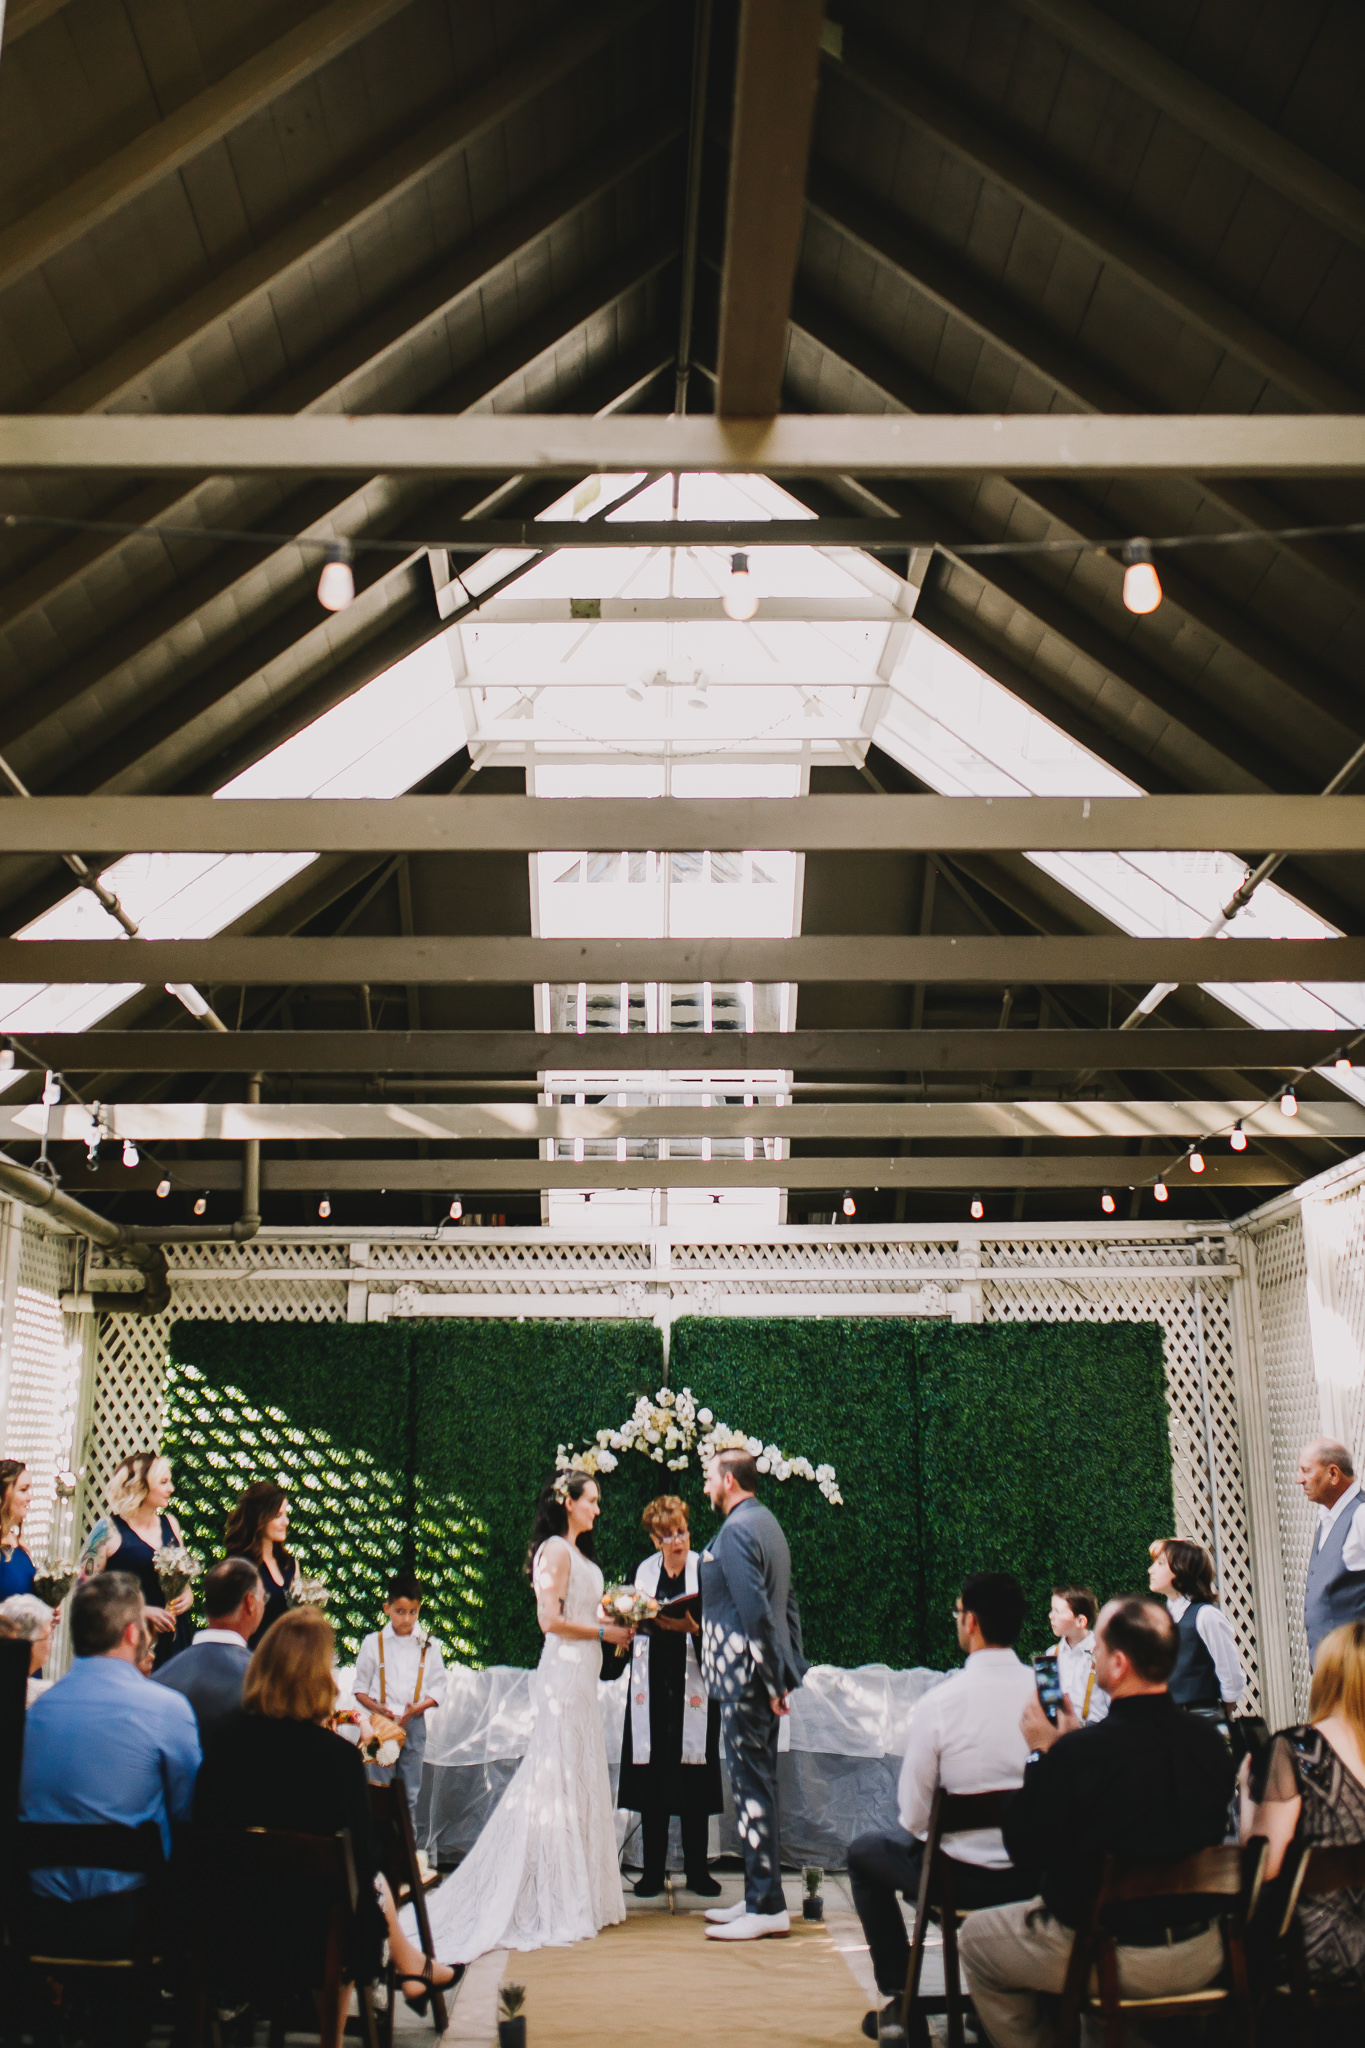 Archer Inspired Photography Sara and Aaron Winchester Mystery House NorCal San Jose California Wedding Photographer-130.jpg